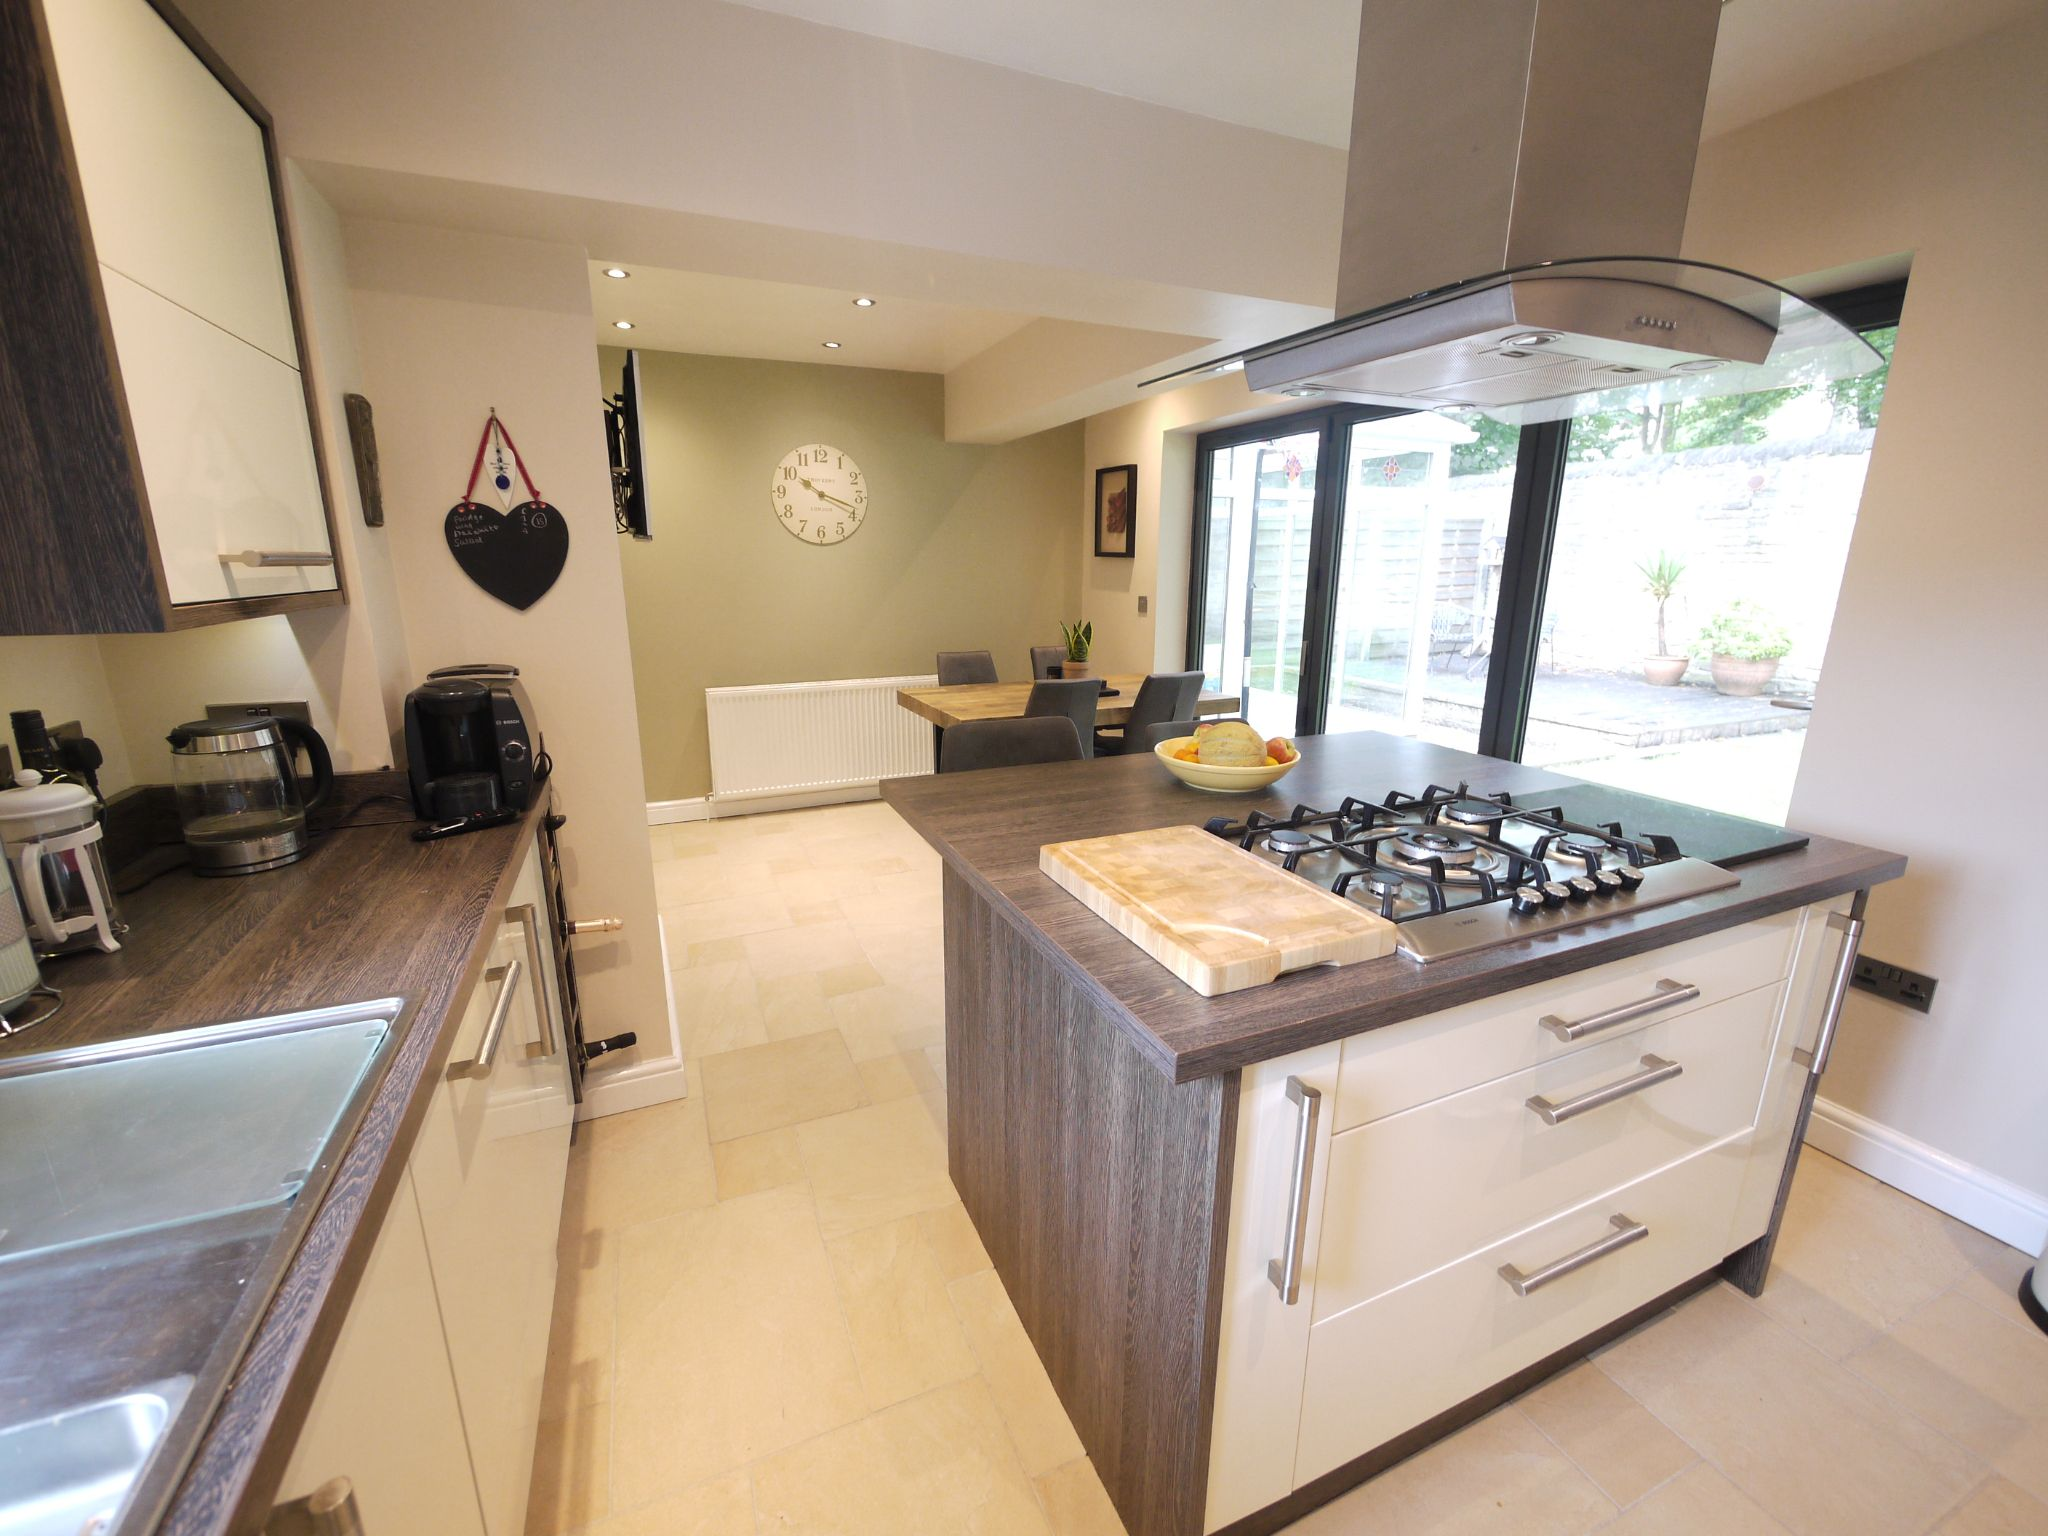 3 bedroom semi-detached house SSTC in Brighouse - Dining Kitchen 2.